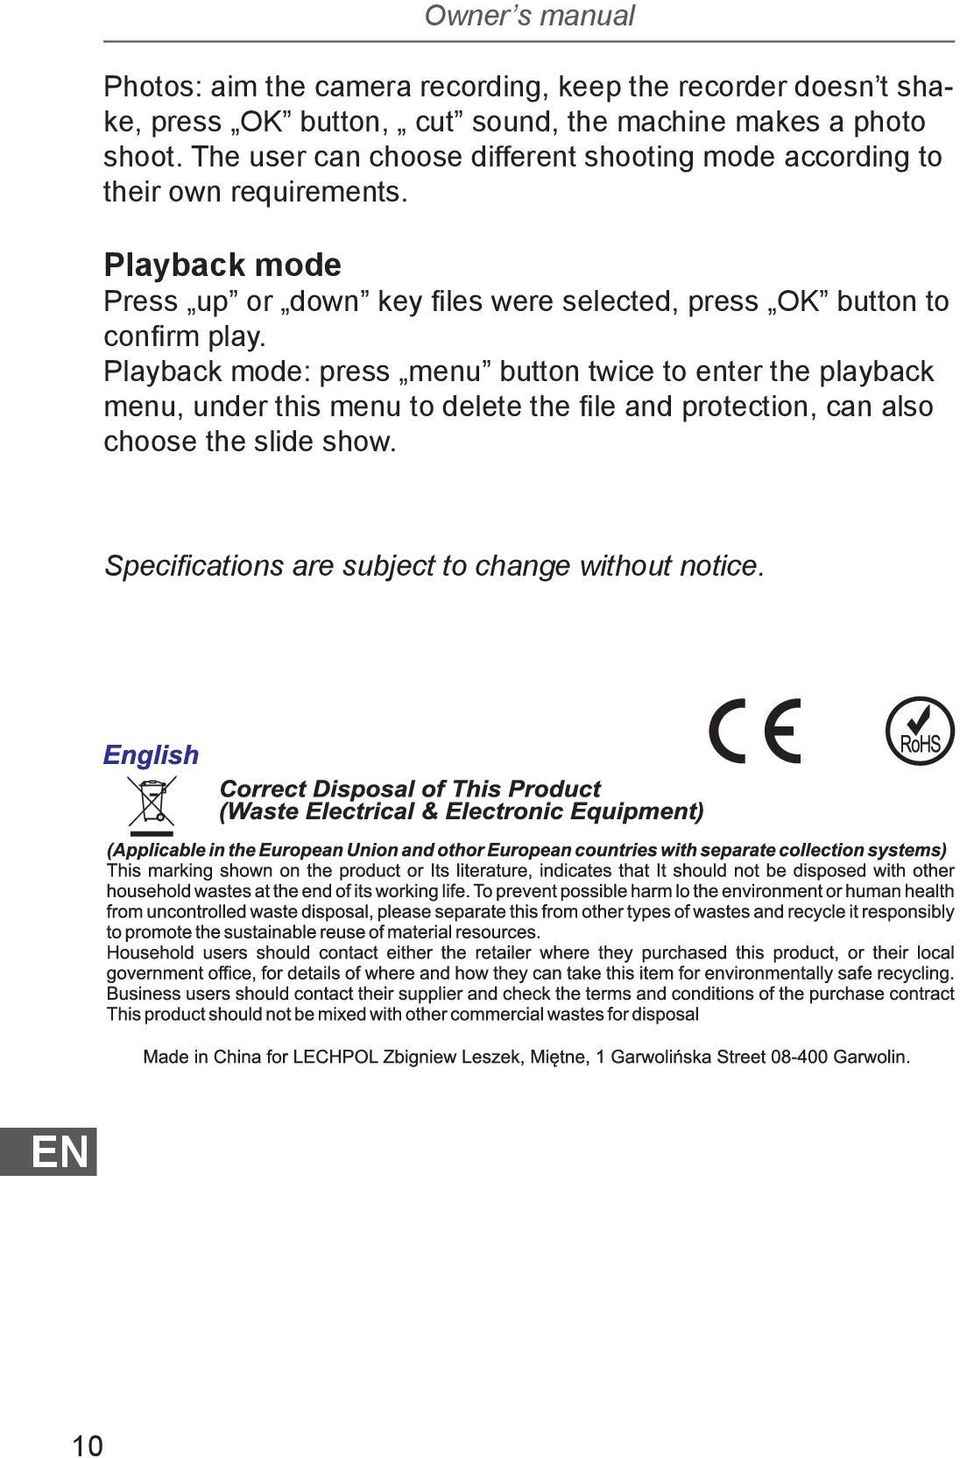 Playback mode Press up or down key files were selected, press OK button to confirm play.